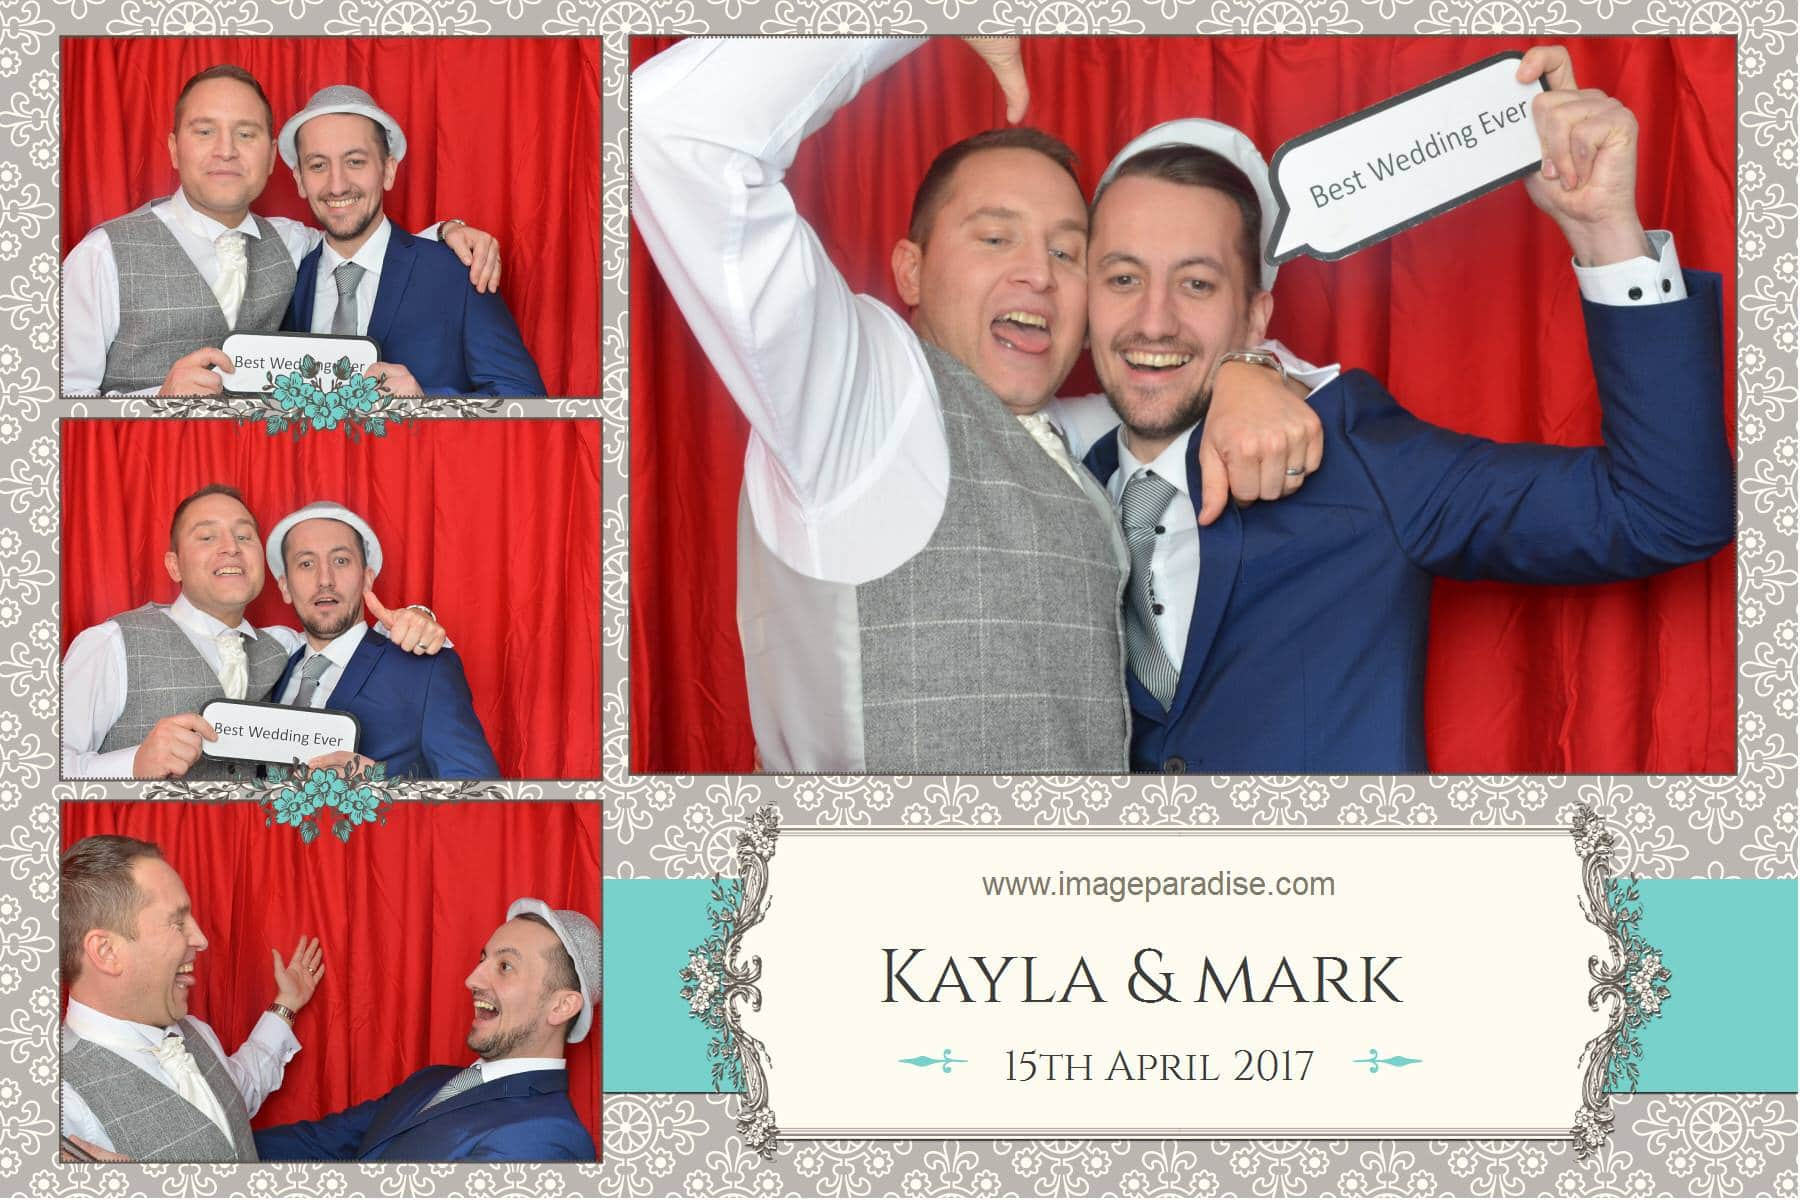 Messing about in the photo booth